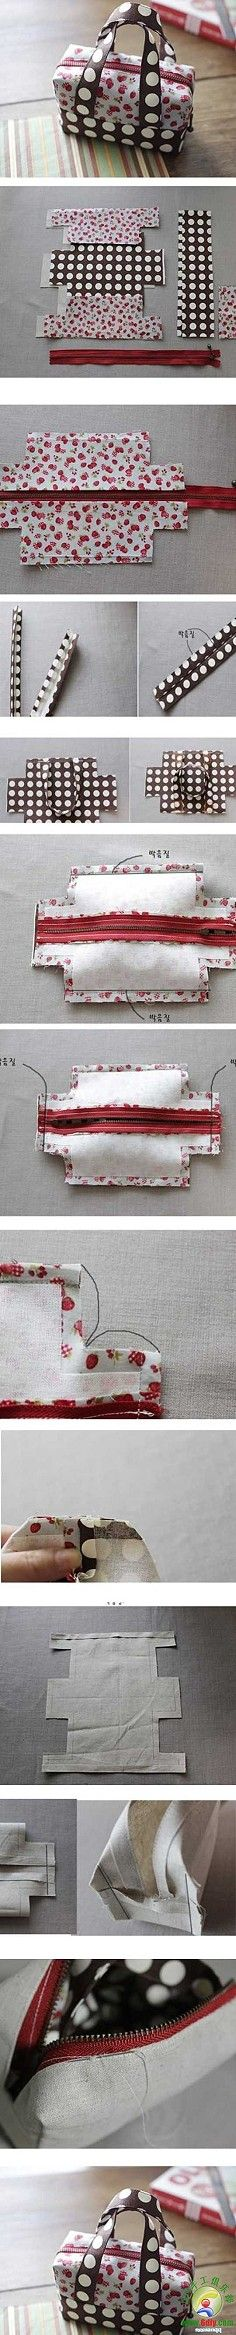 DIY: envelope/rectangle bag